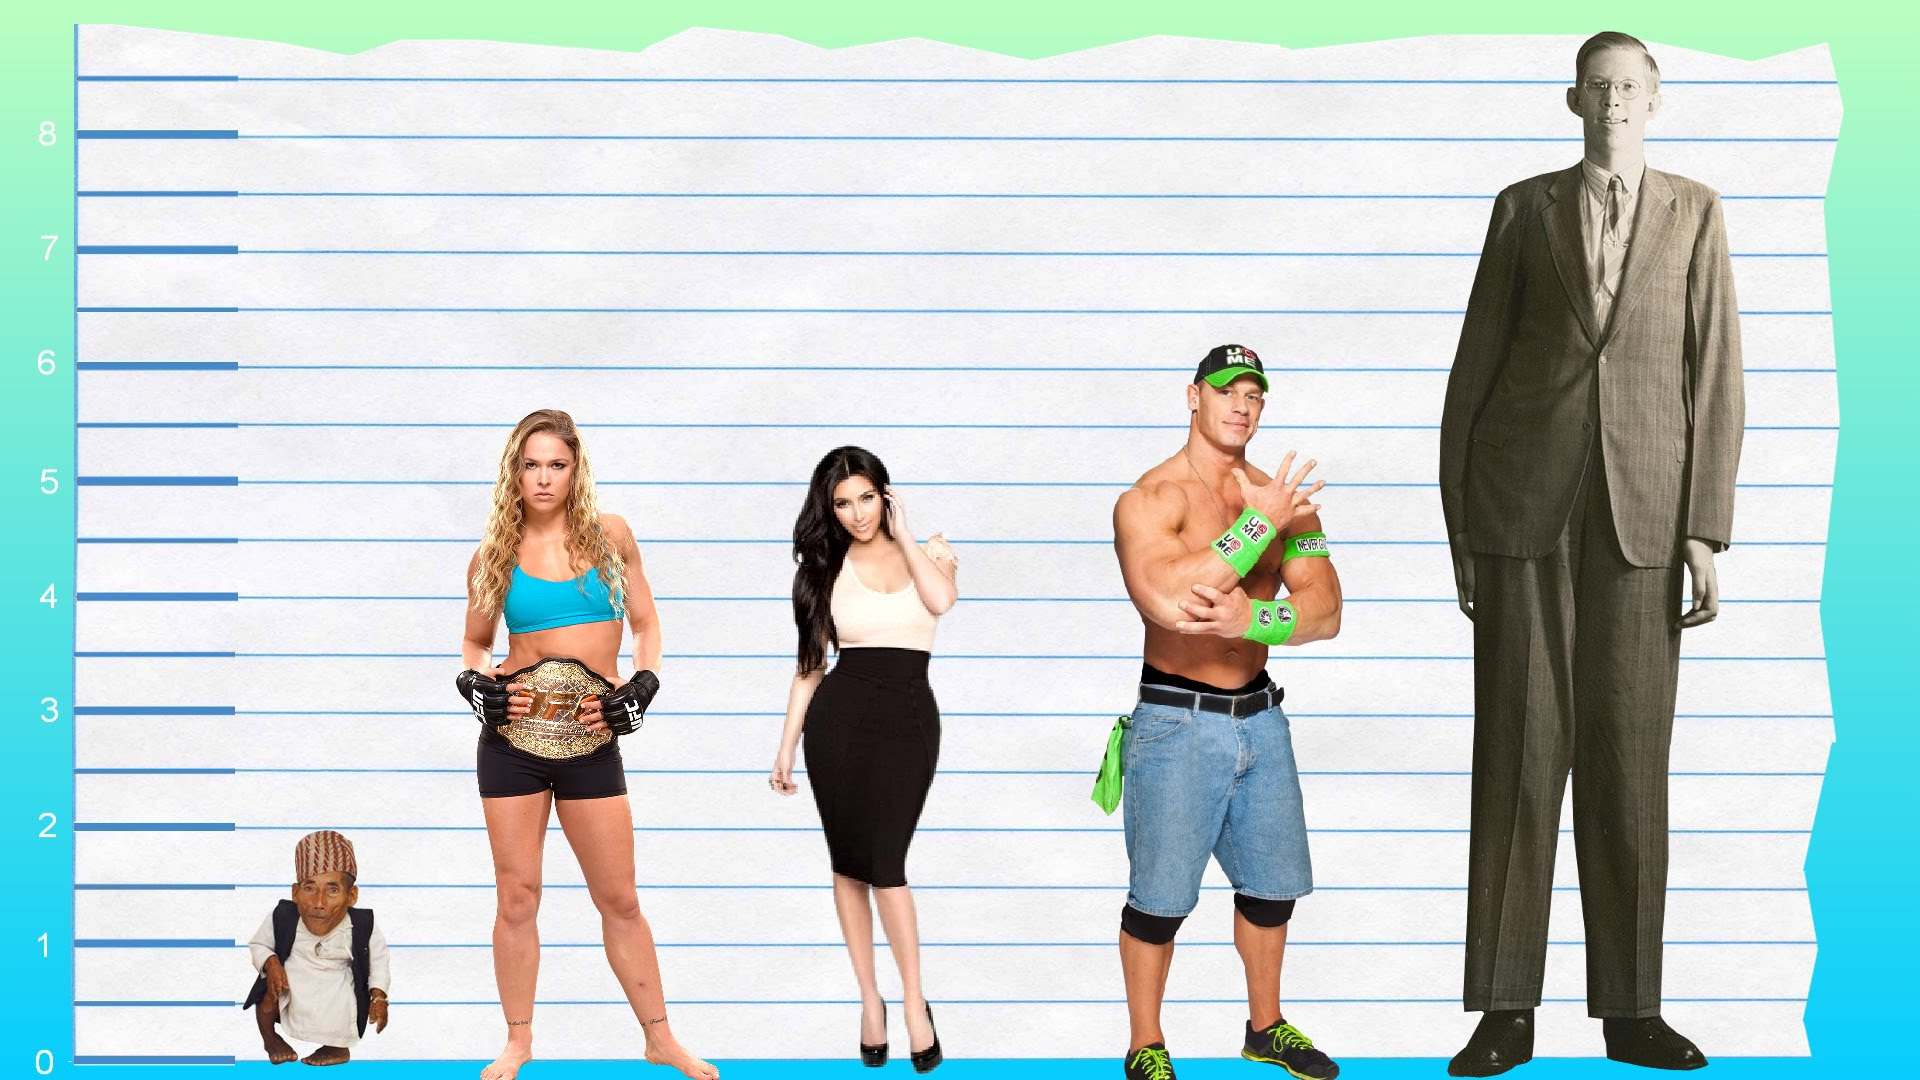 How Tall Is Ronda Rousey? - Height Comparison! - YouTube